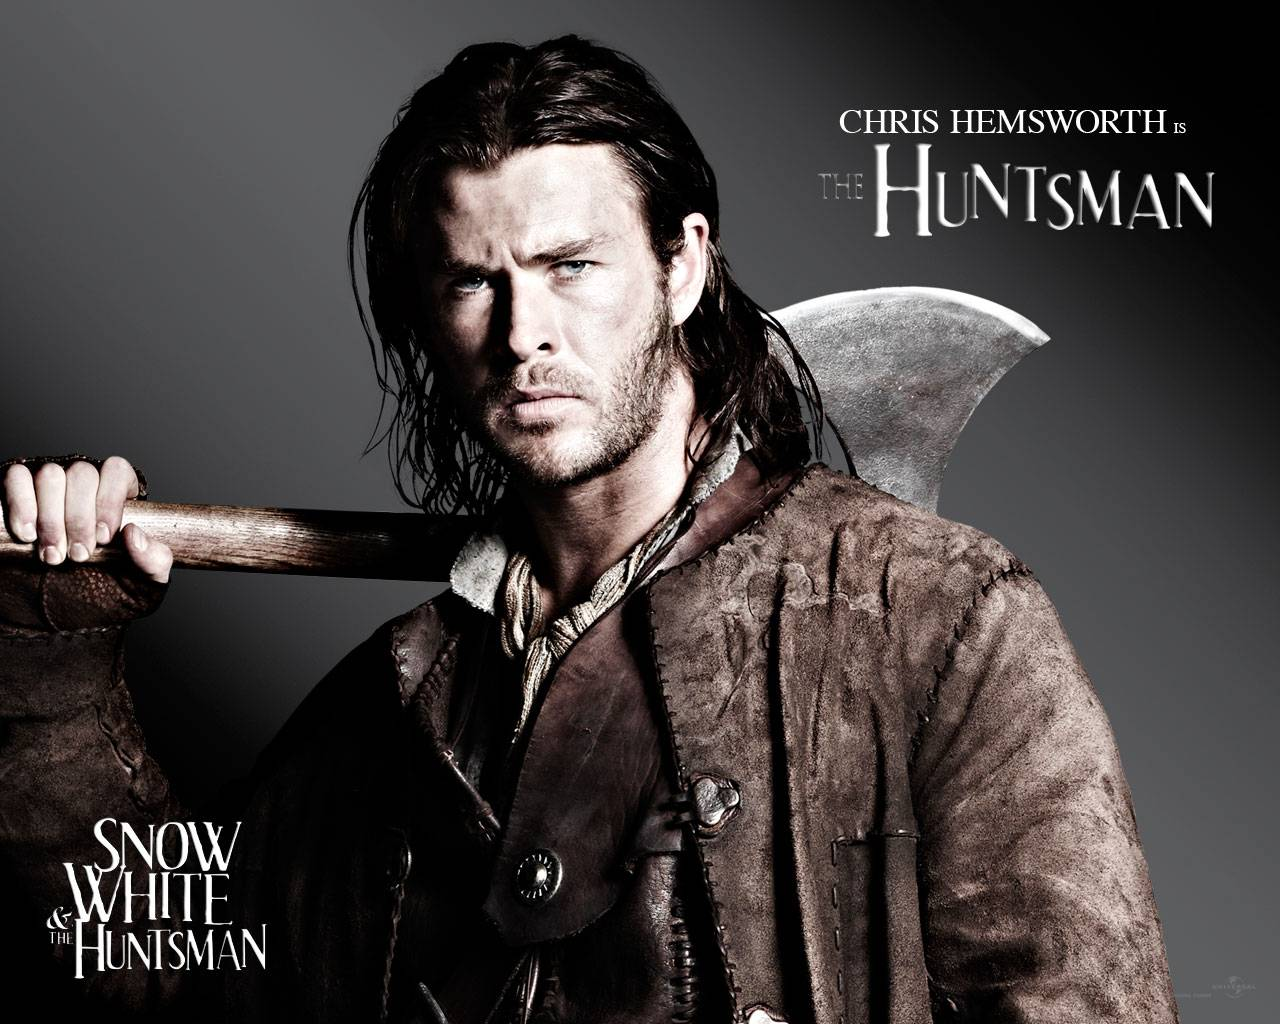 http://2.bp.blogspot.com/-MKJ-x7EMQPU/T_XNOums7KI/AAAAAAAAApA/Or2Y_NtZrik/s1600/Snow-White-And-The-Huntsman-2012-Film-Wallpaper-474810.jpg